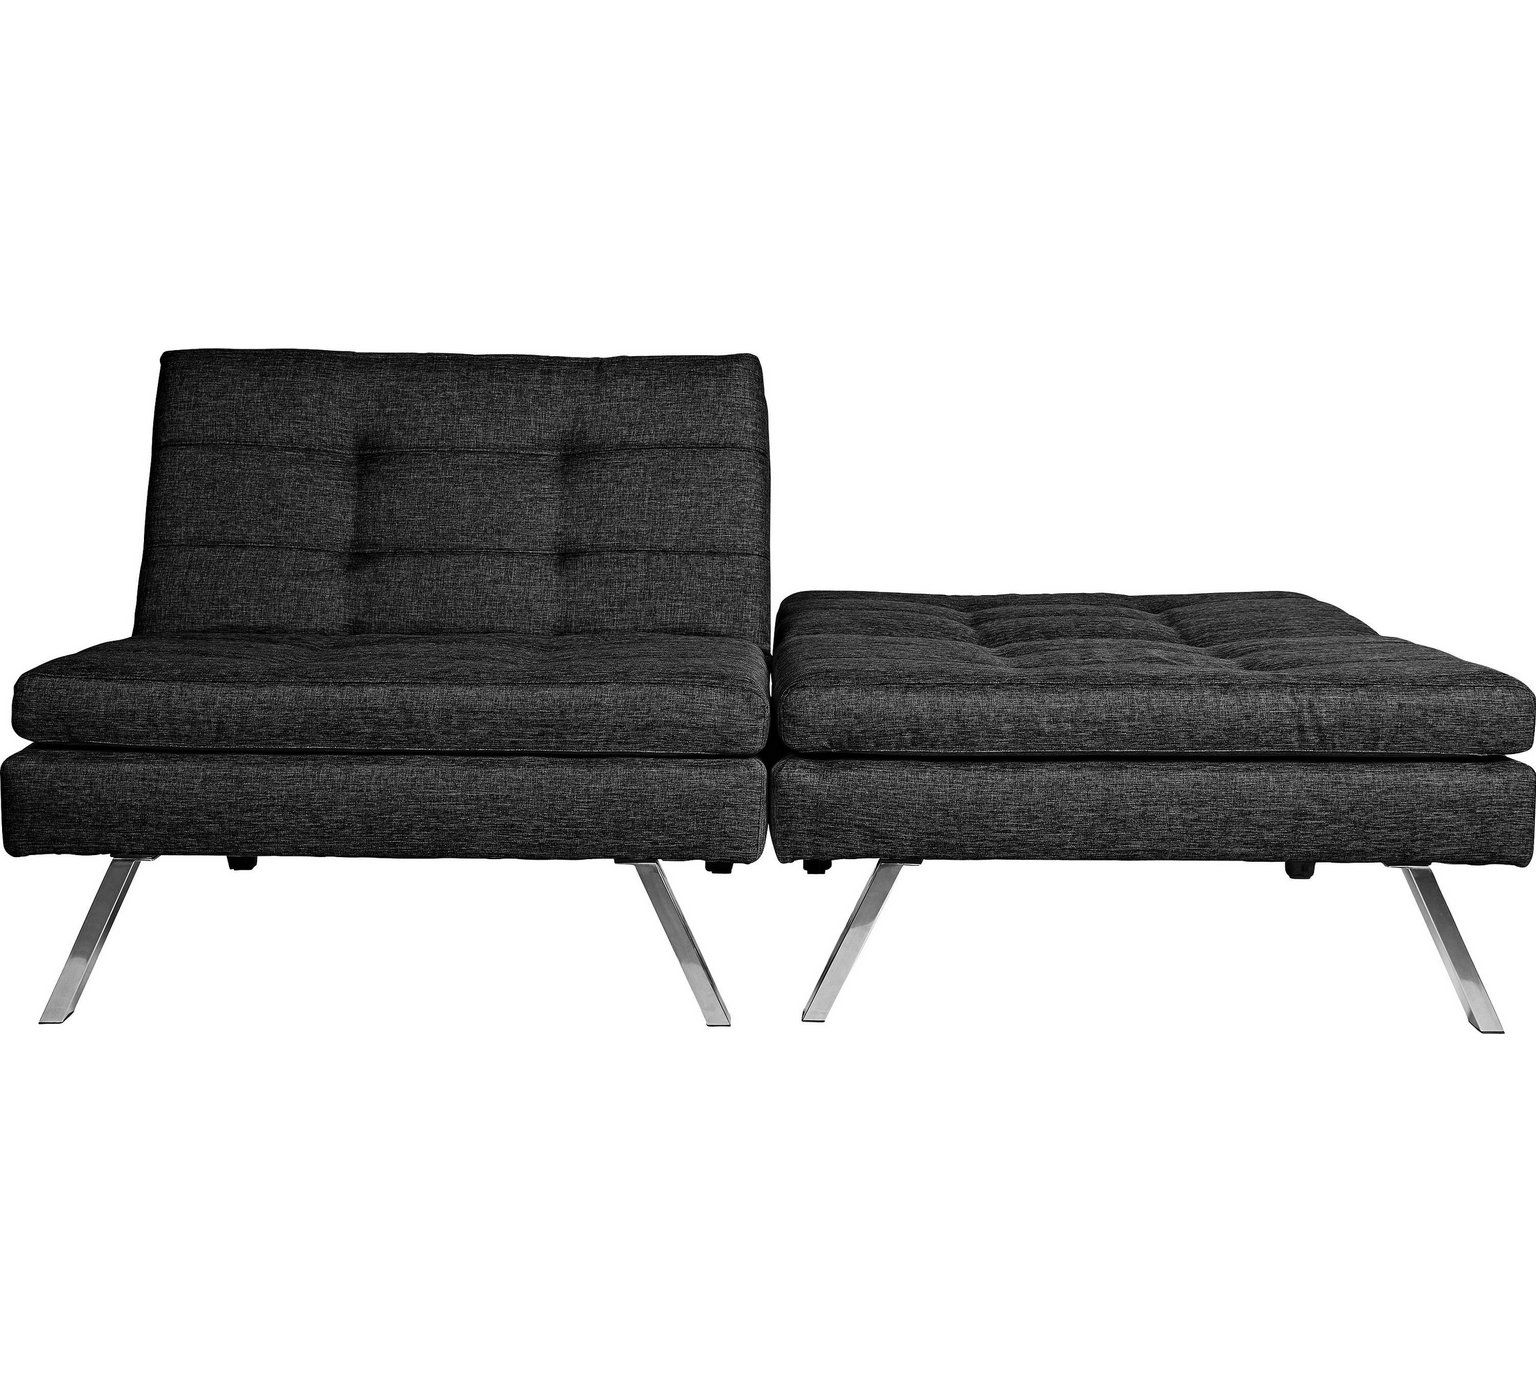 Hygena Duo 2 Seater Clic Clac Sofa Bed Charcoal At Argos Co